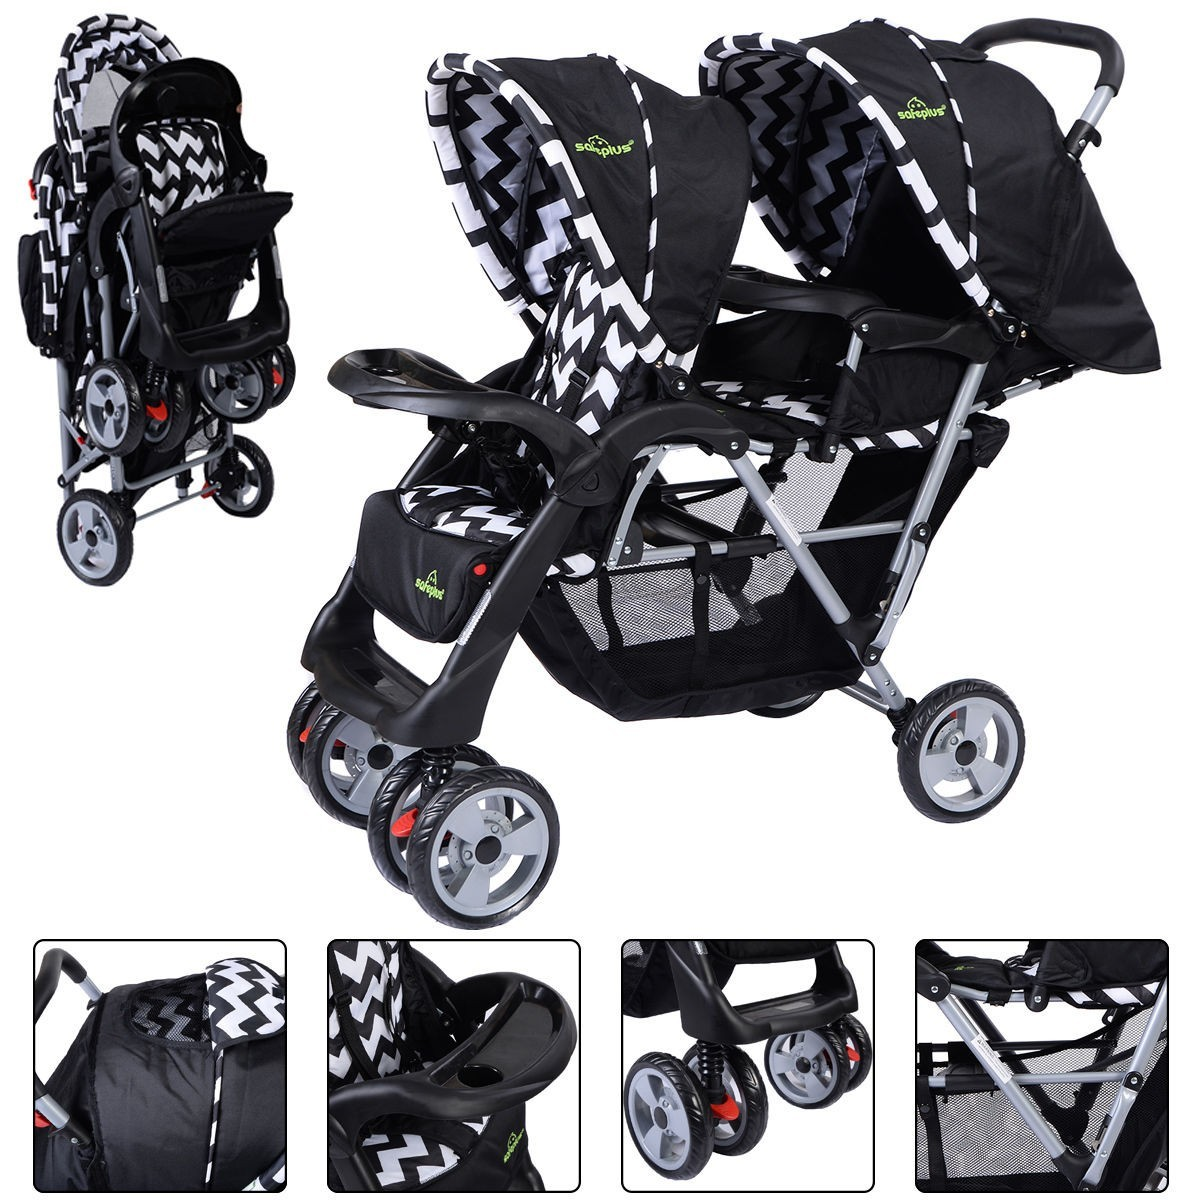 Foldable Twin Baby Double Stroller Kids Jogger Travel Inf...